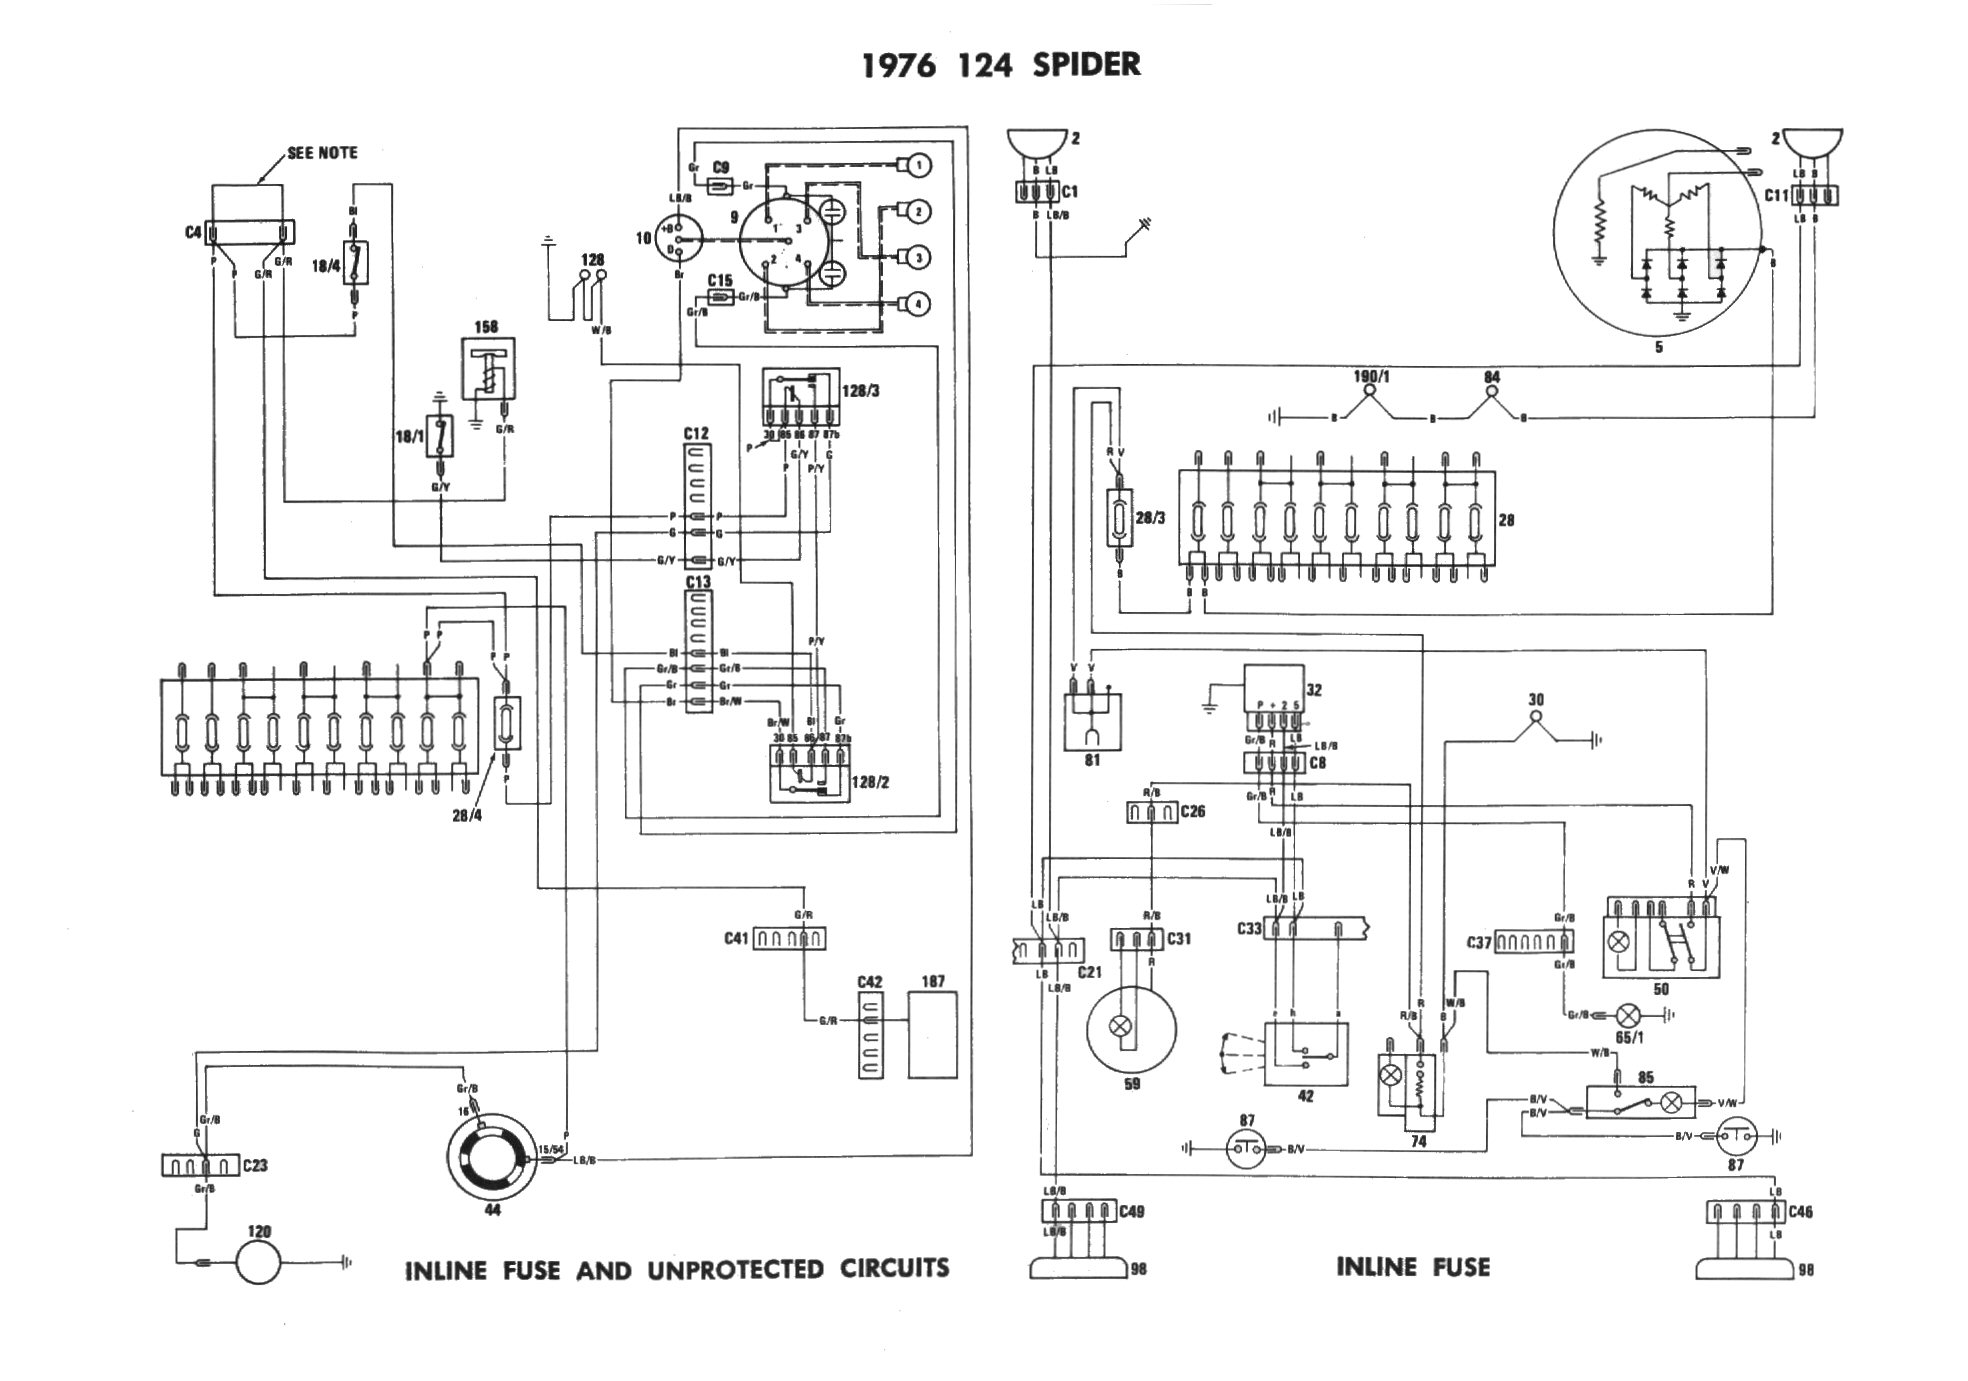 1979 Corvette Wiring Diagram Download : 37 Wiring Diagram